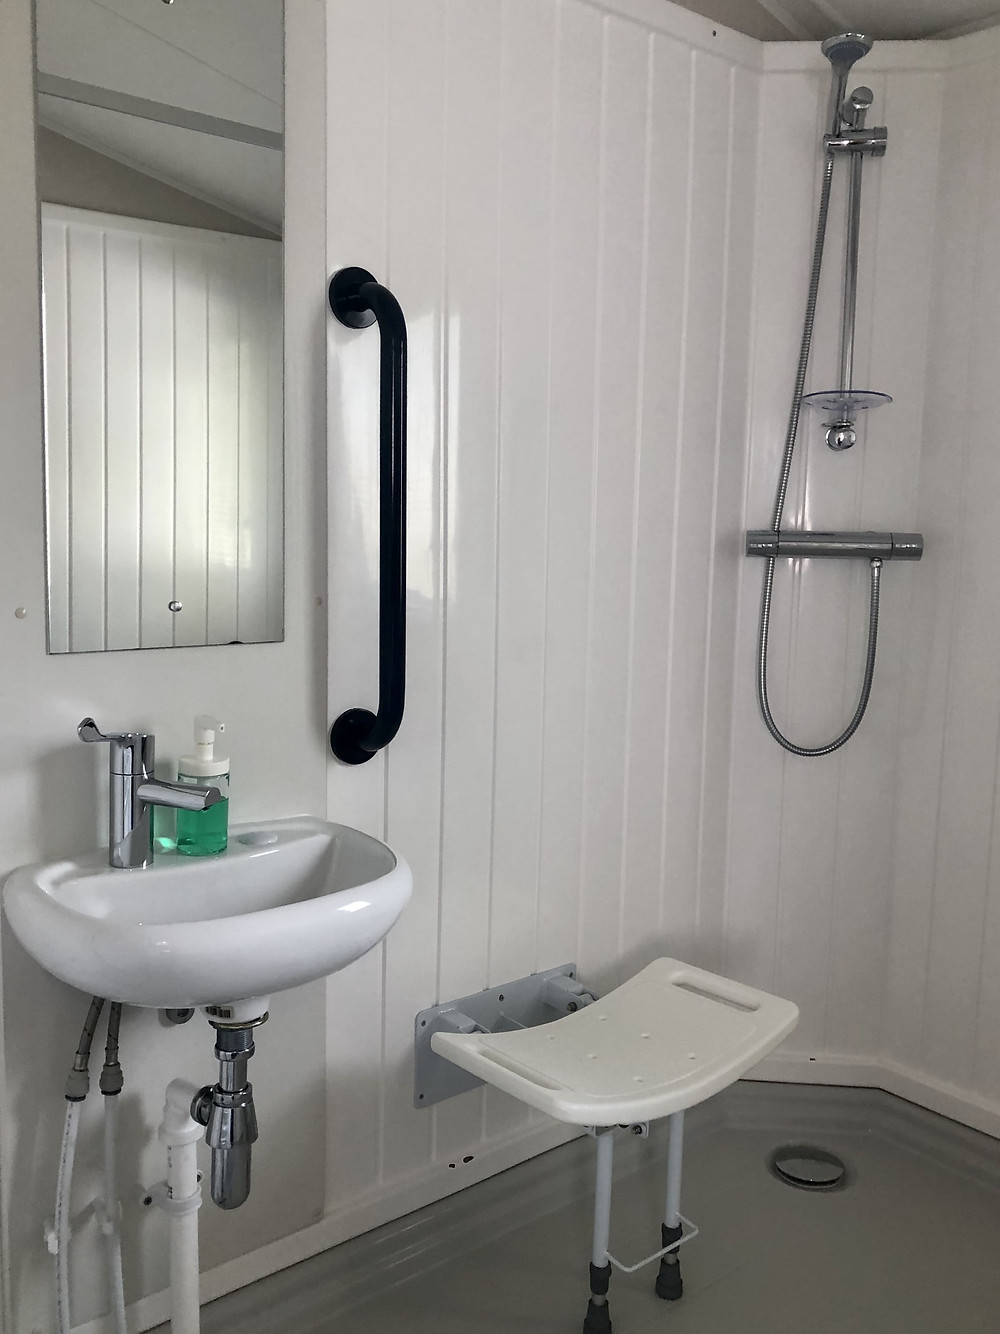 Callander Woods Wheelchair Accessible Caravan Sink and Shower